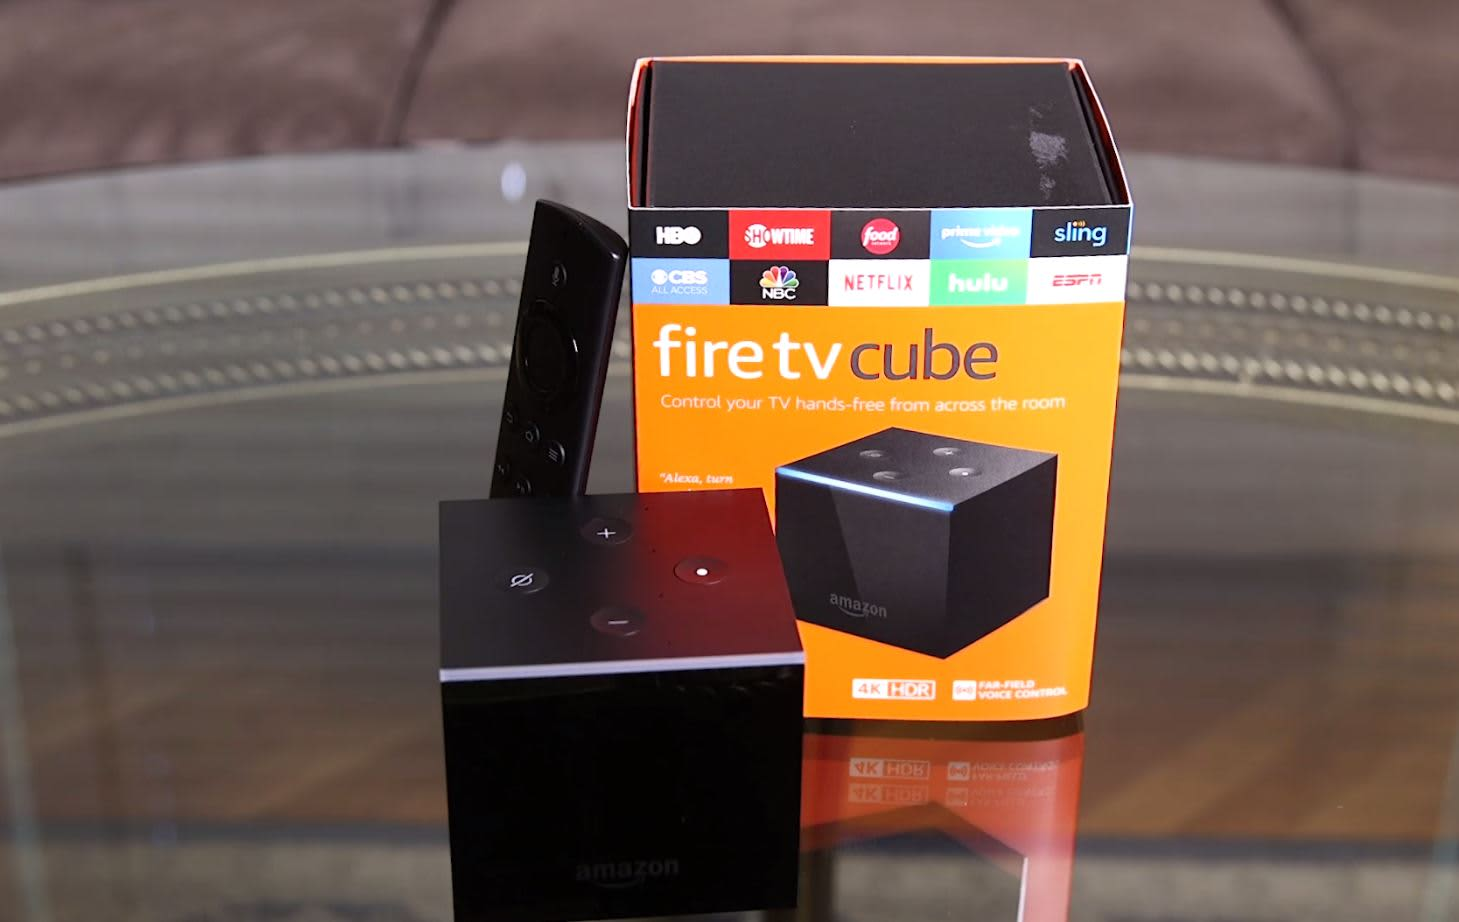 Amazon's Fire TV Cube is a must-buy if you hate losing your remote